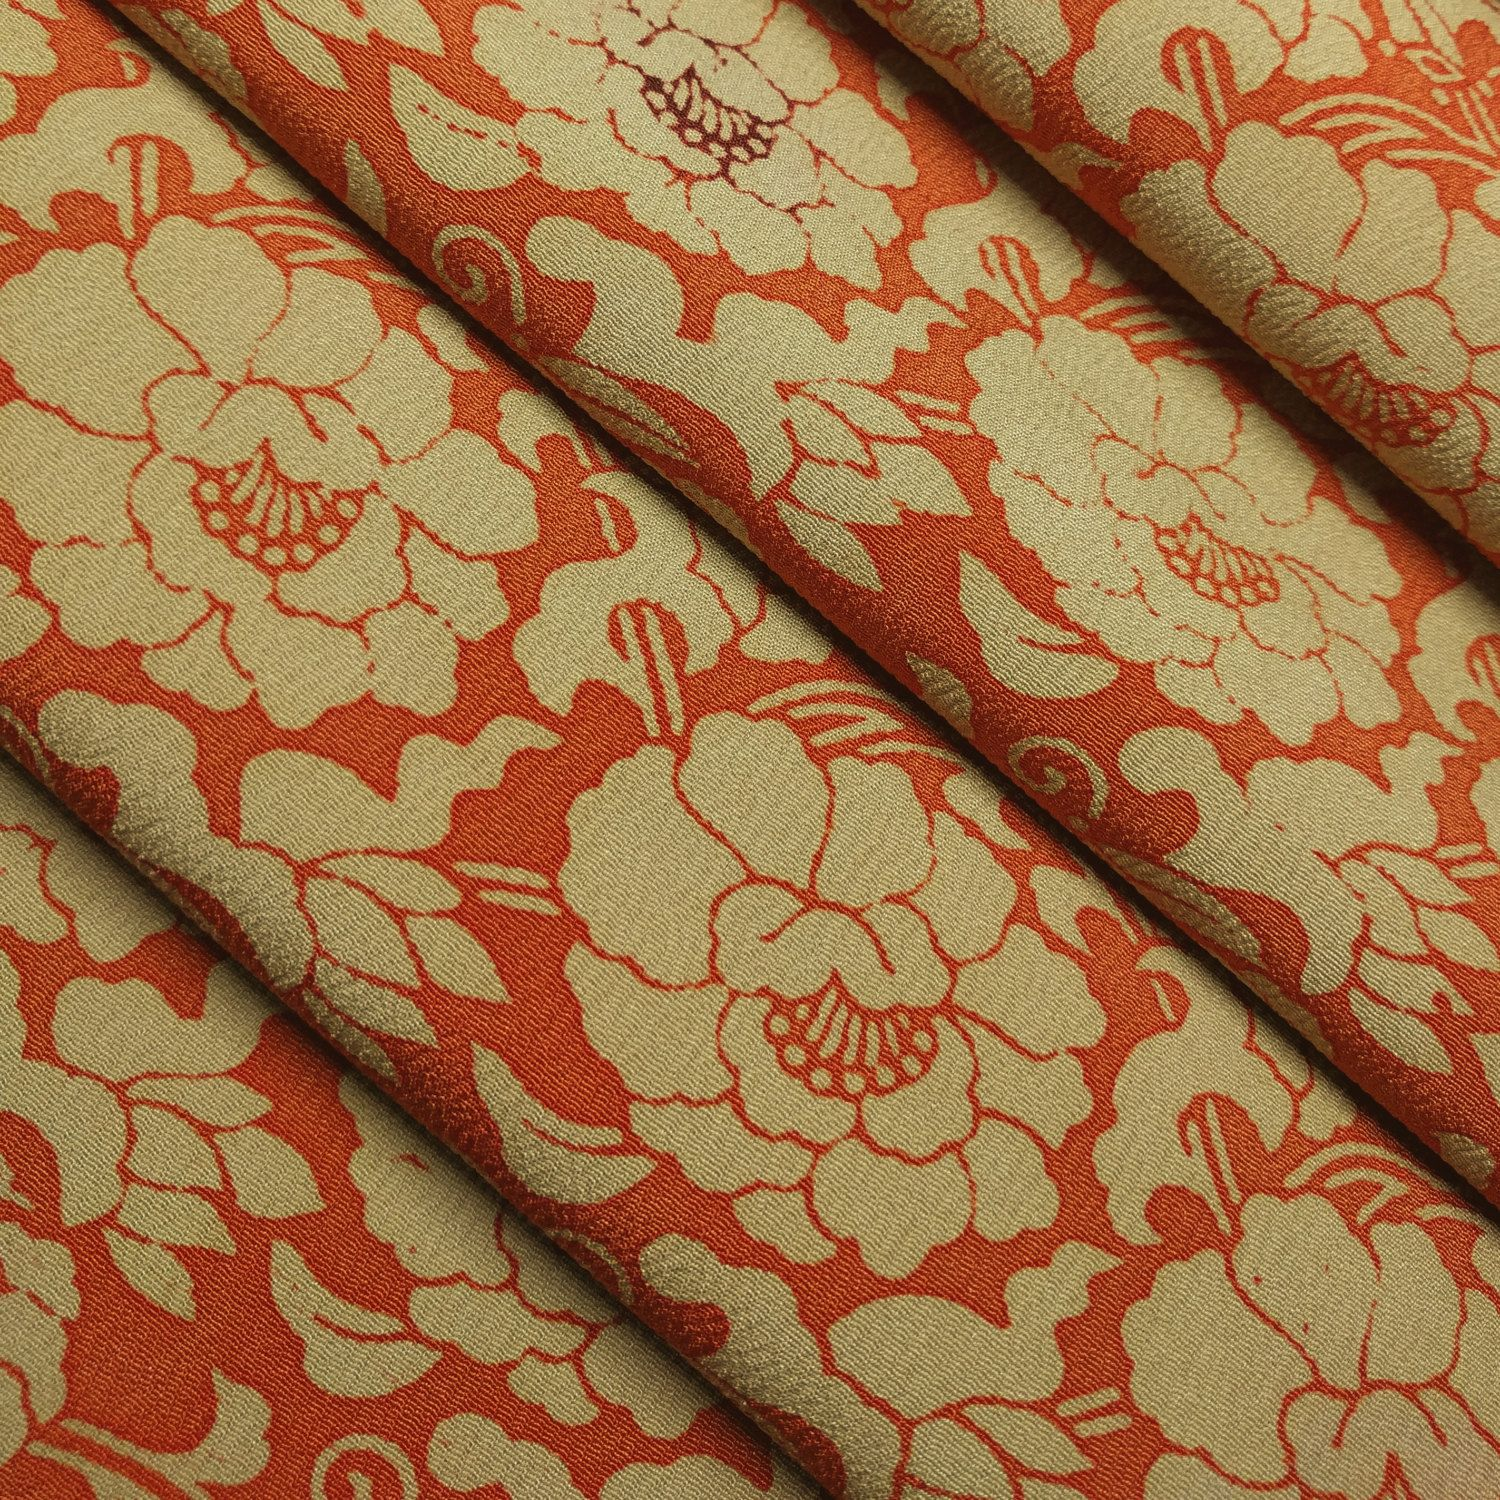 Special Order For Lm Chirimen Crepe Silk Kimono Fabric Red Etsy Kimono Fabric Fabric Silk Kimono